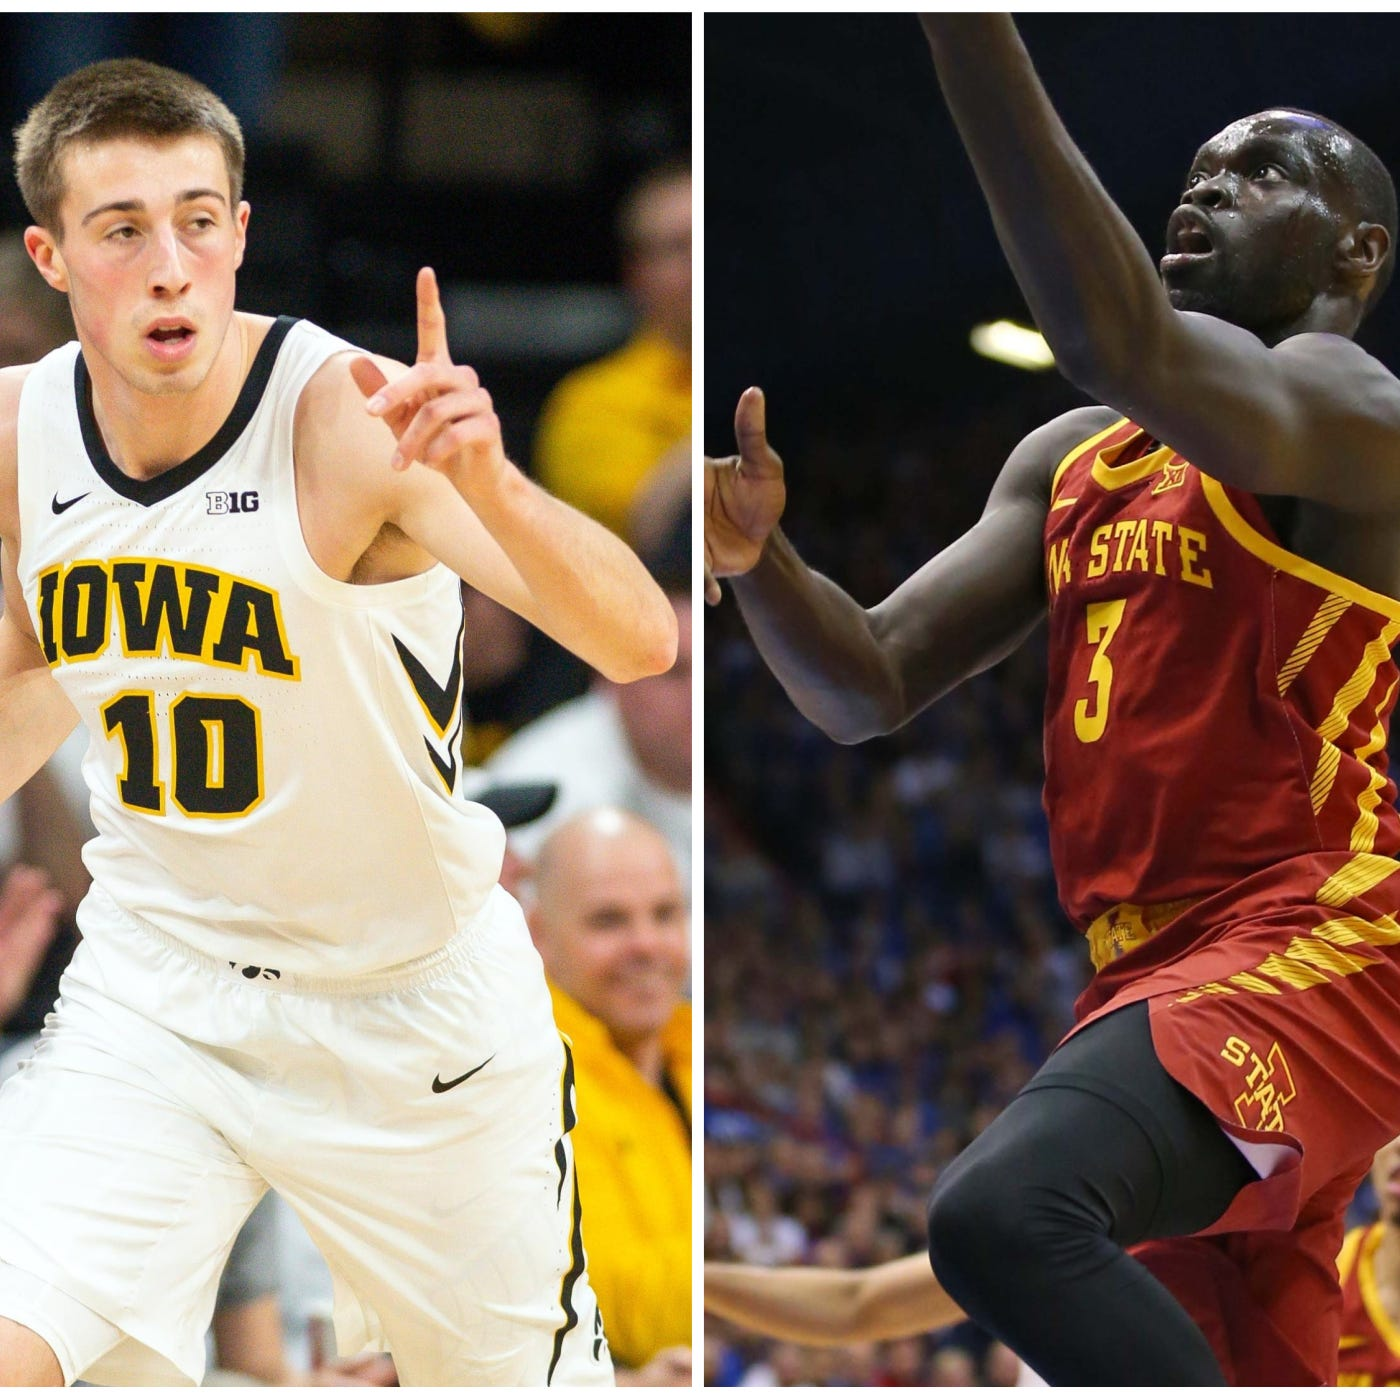 Bracket analysis: Is NCAA's new tournament ranking system helping or hurting Hawkeyes, Cyclones?